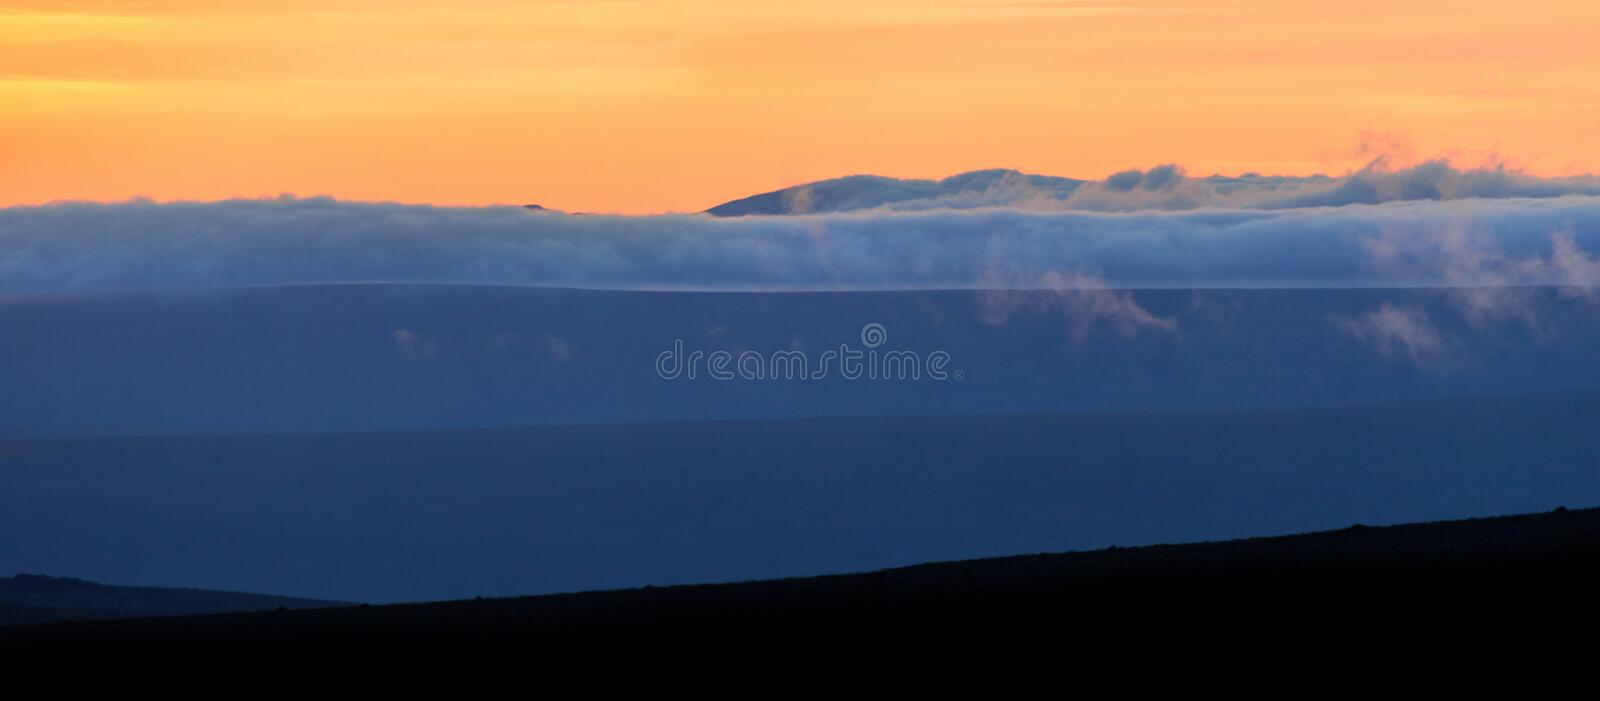 Spectacular blue layered mountain ranges silhouettes. Sunset landscape in Iceland. royalty free stock photo